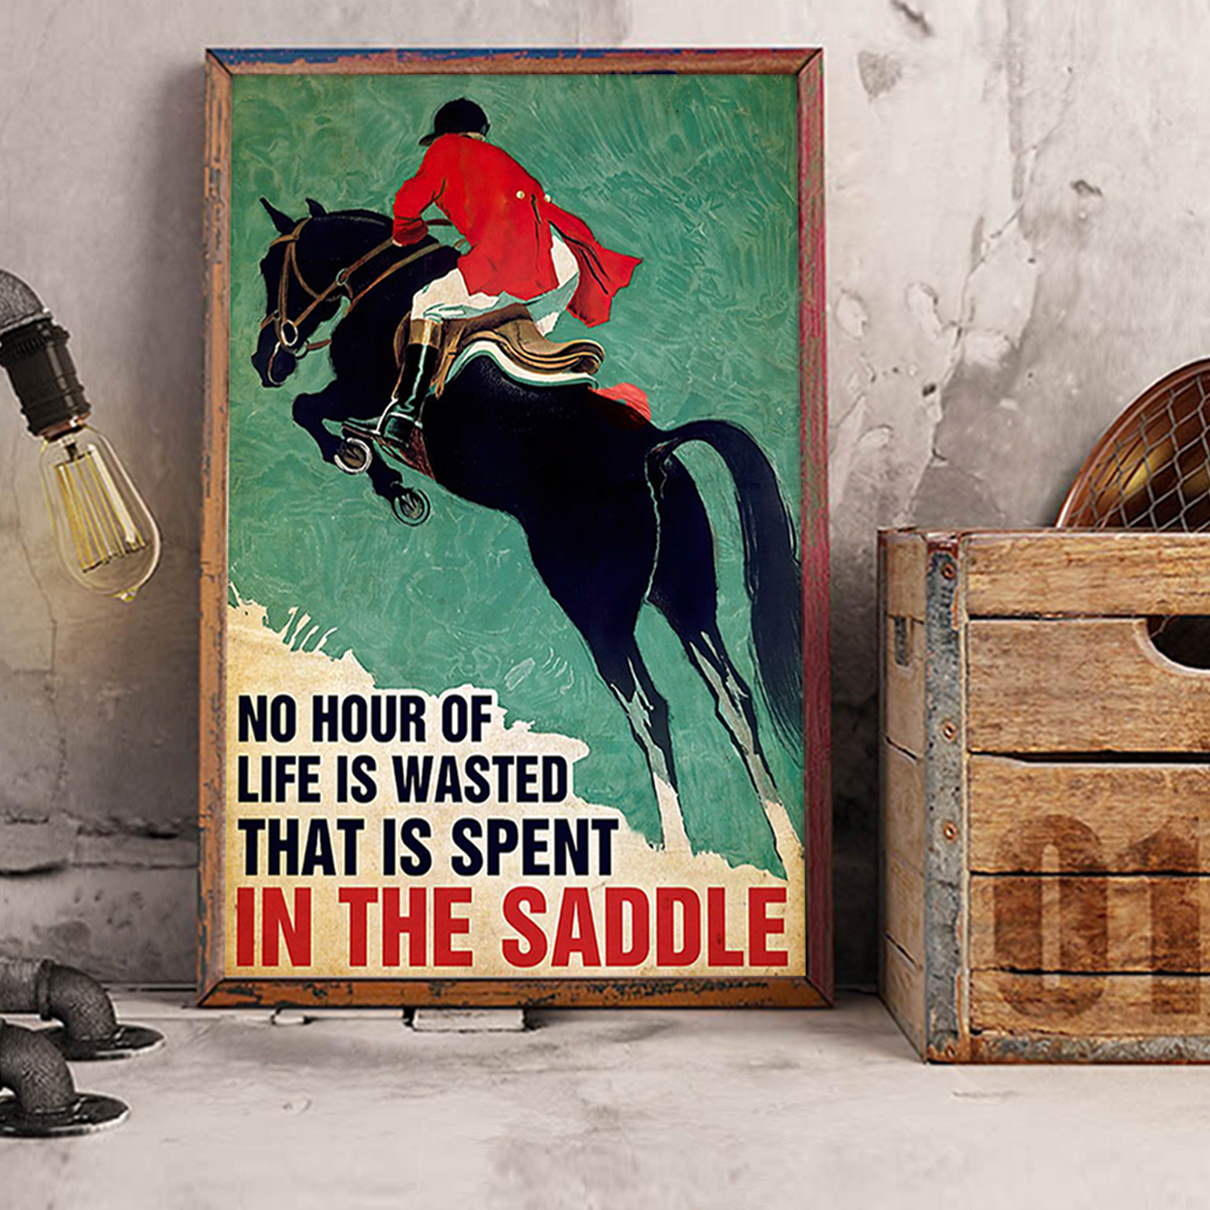 Horse riding no hour of life is wasted that is spent in the saddle poster A3